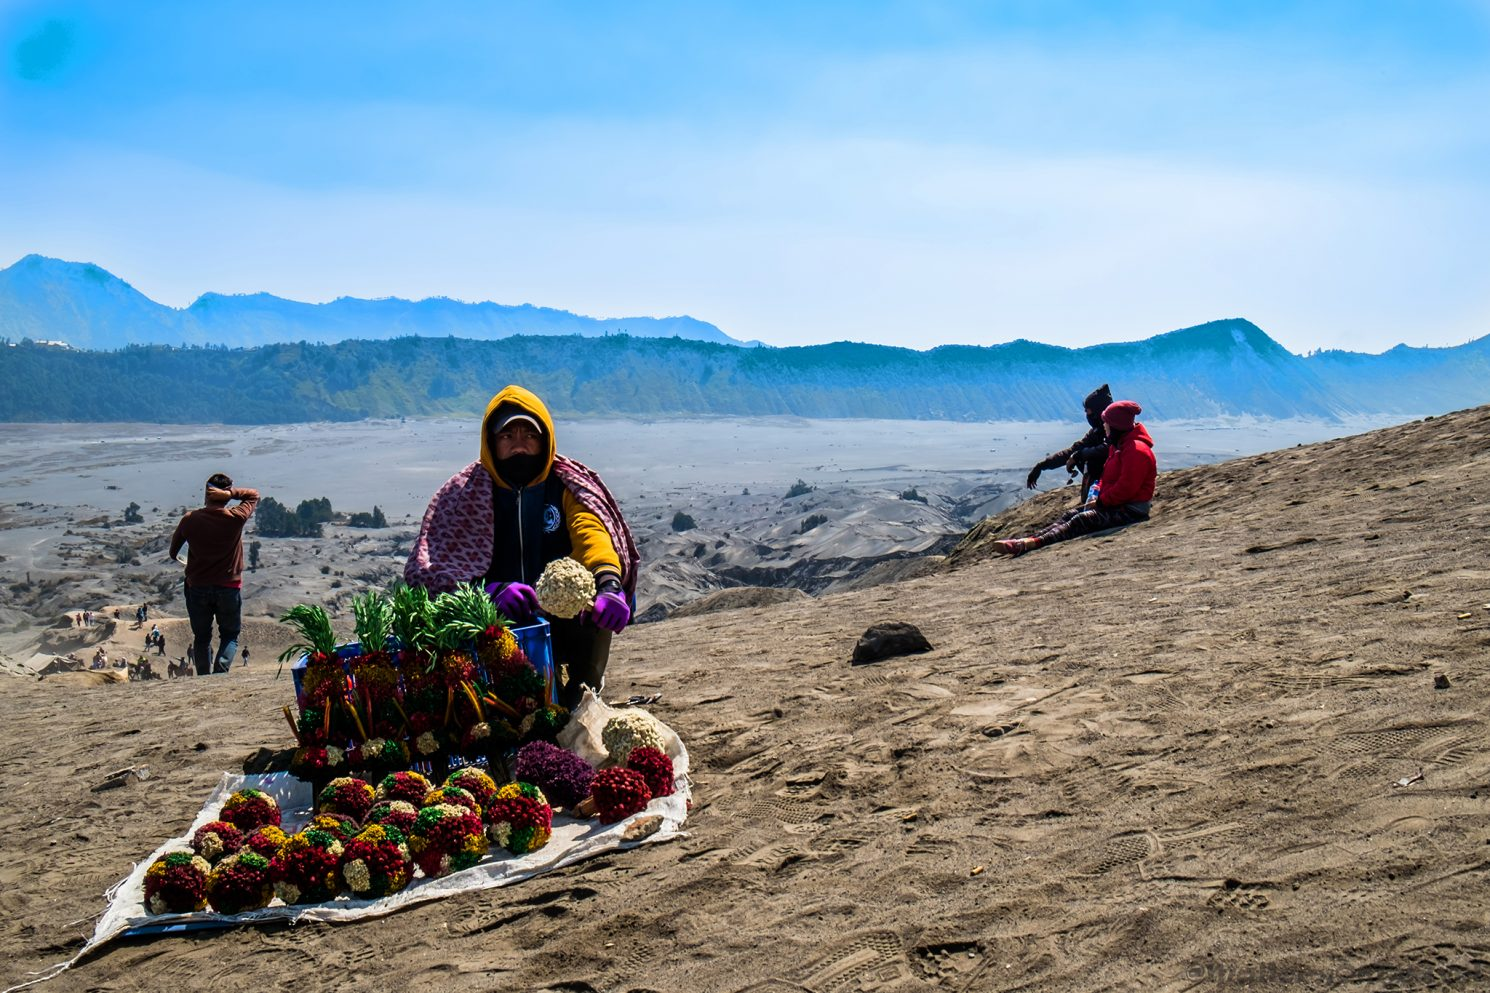 A shrine salesman on the slopes of Mount Bromo, Bromo Tengger Semeru National Park in Surabaya, Surabaya, the capital of East Java in the Republic of Indonesia on Mallory on Travel adventure travel, photography, travel iain_mallory_indo8246